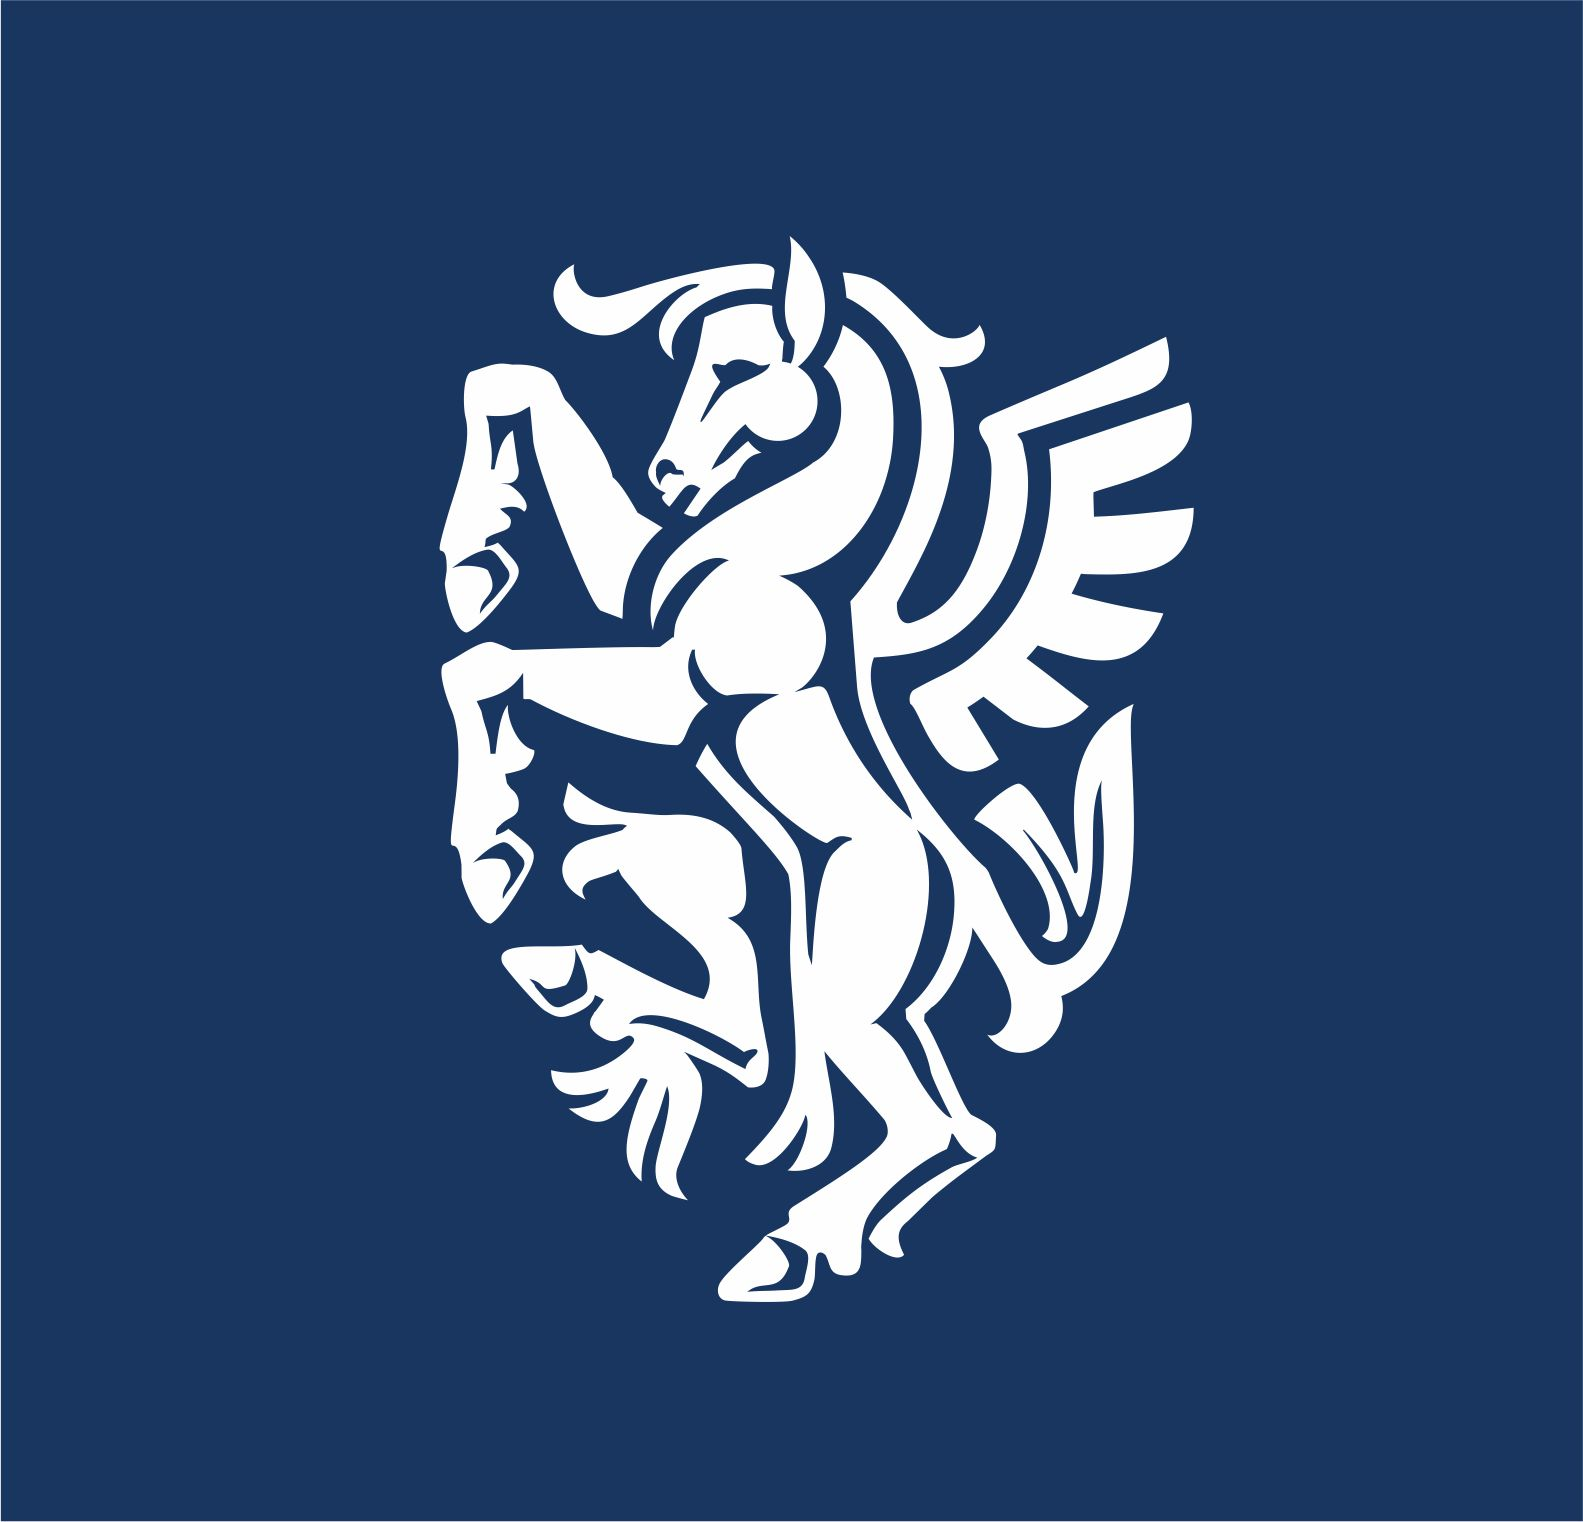 Pegasus crest logo in the shape of the shield.   Logotip s prikazom Pegaza u obliku štita.